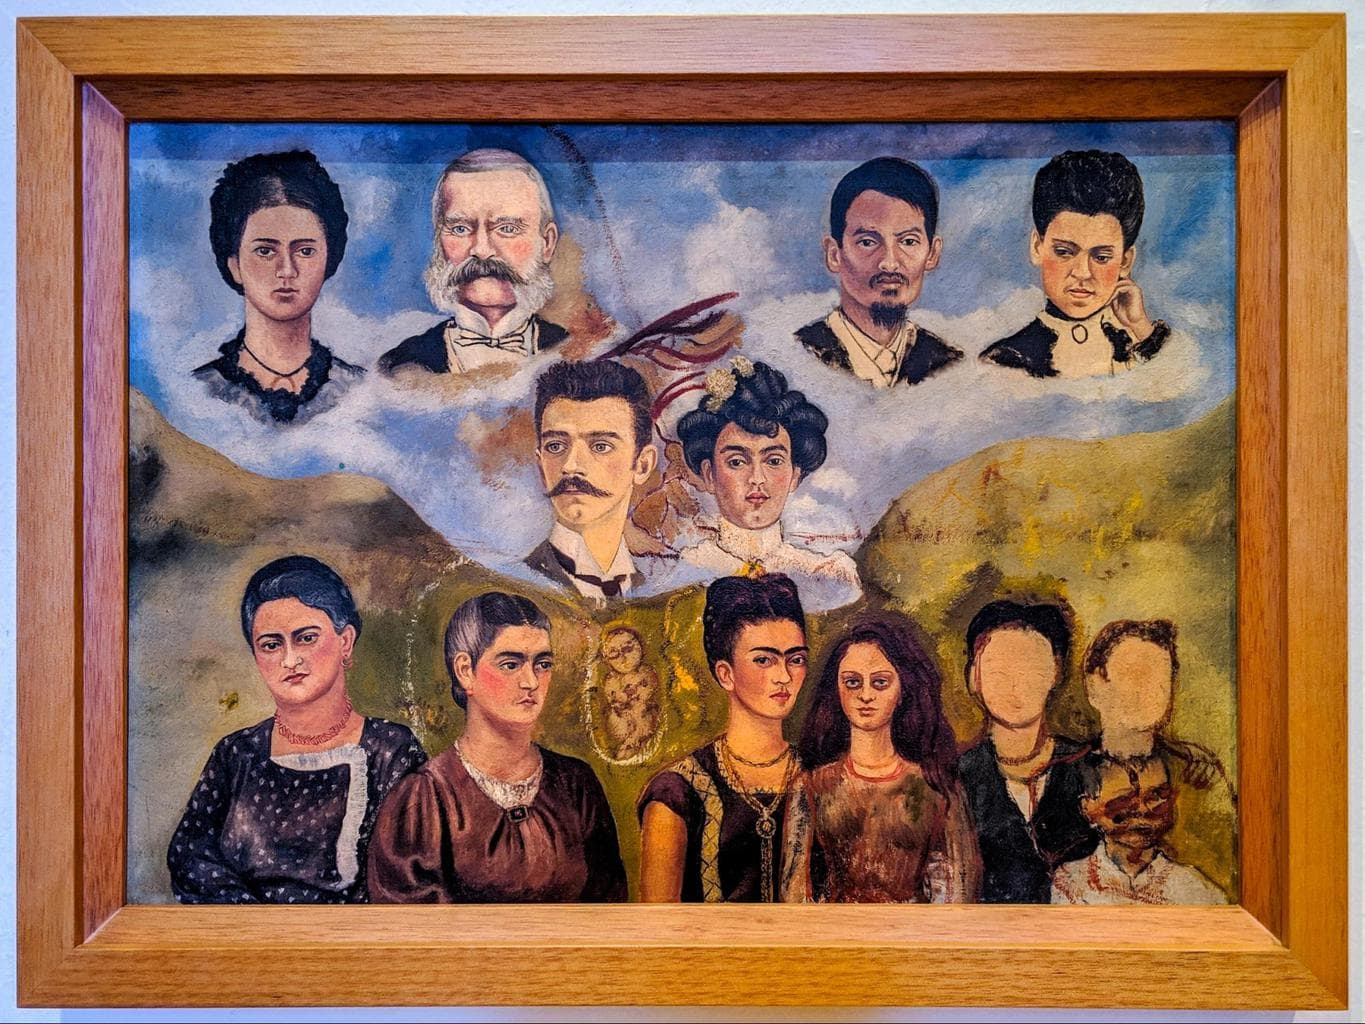 Some of Frida Kahlo's paintings at La Casa Azul